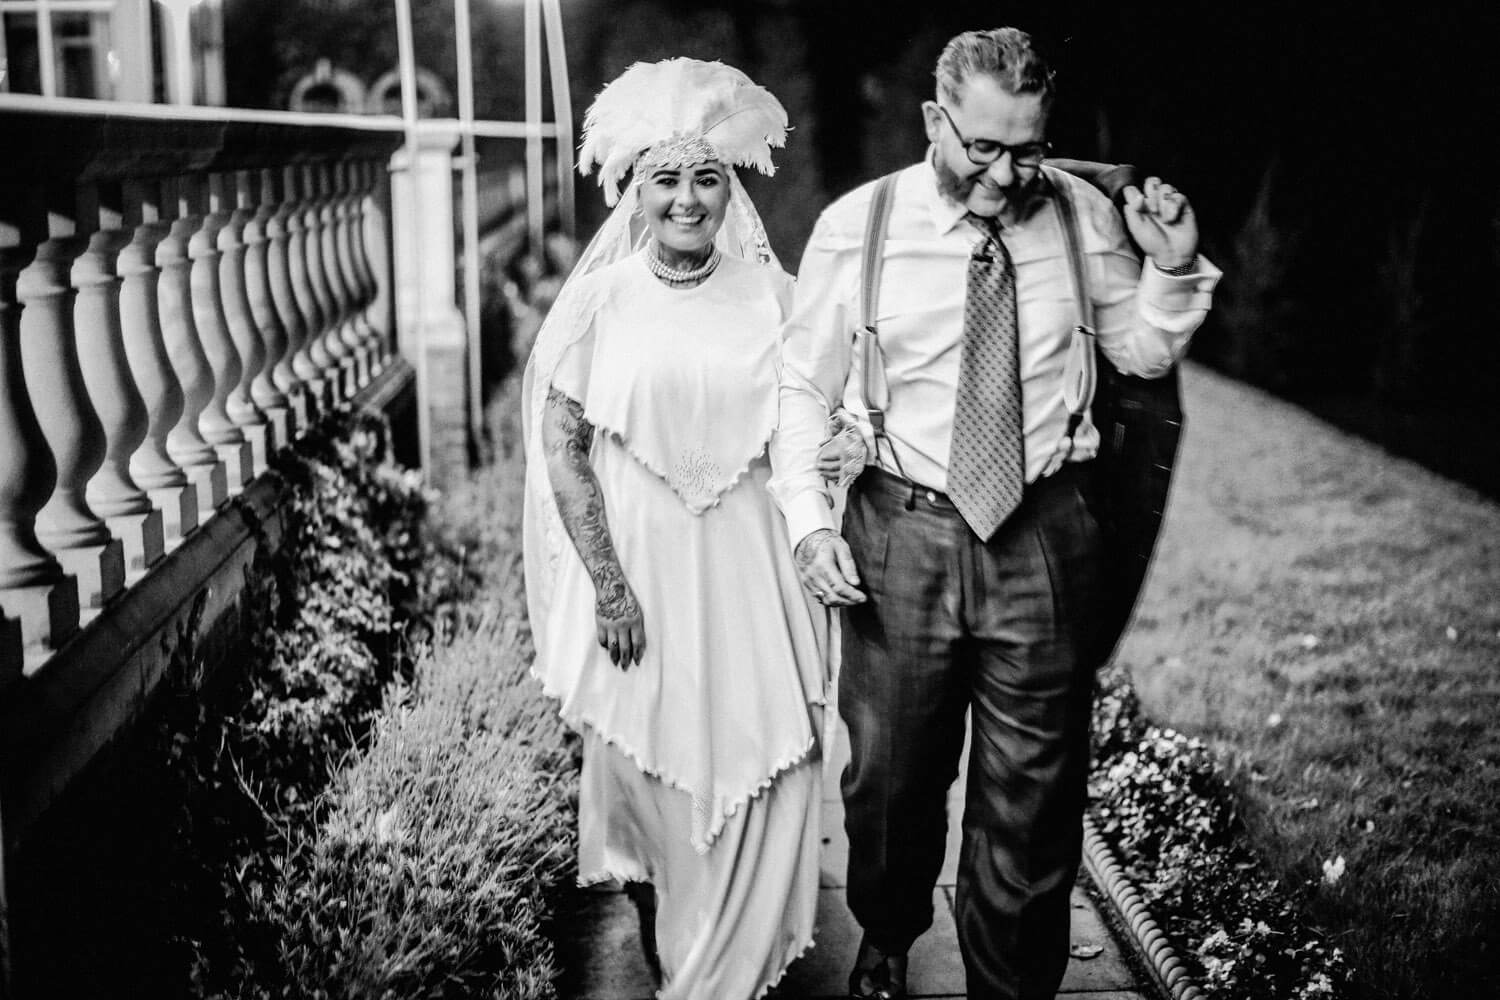 Black and white photo of vintage bride and groom walking and laughing